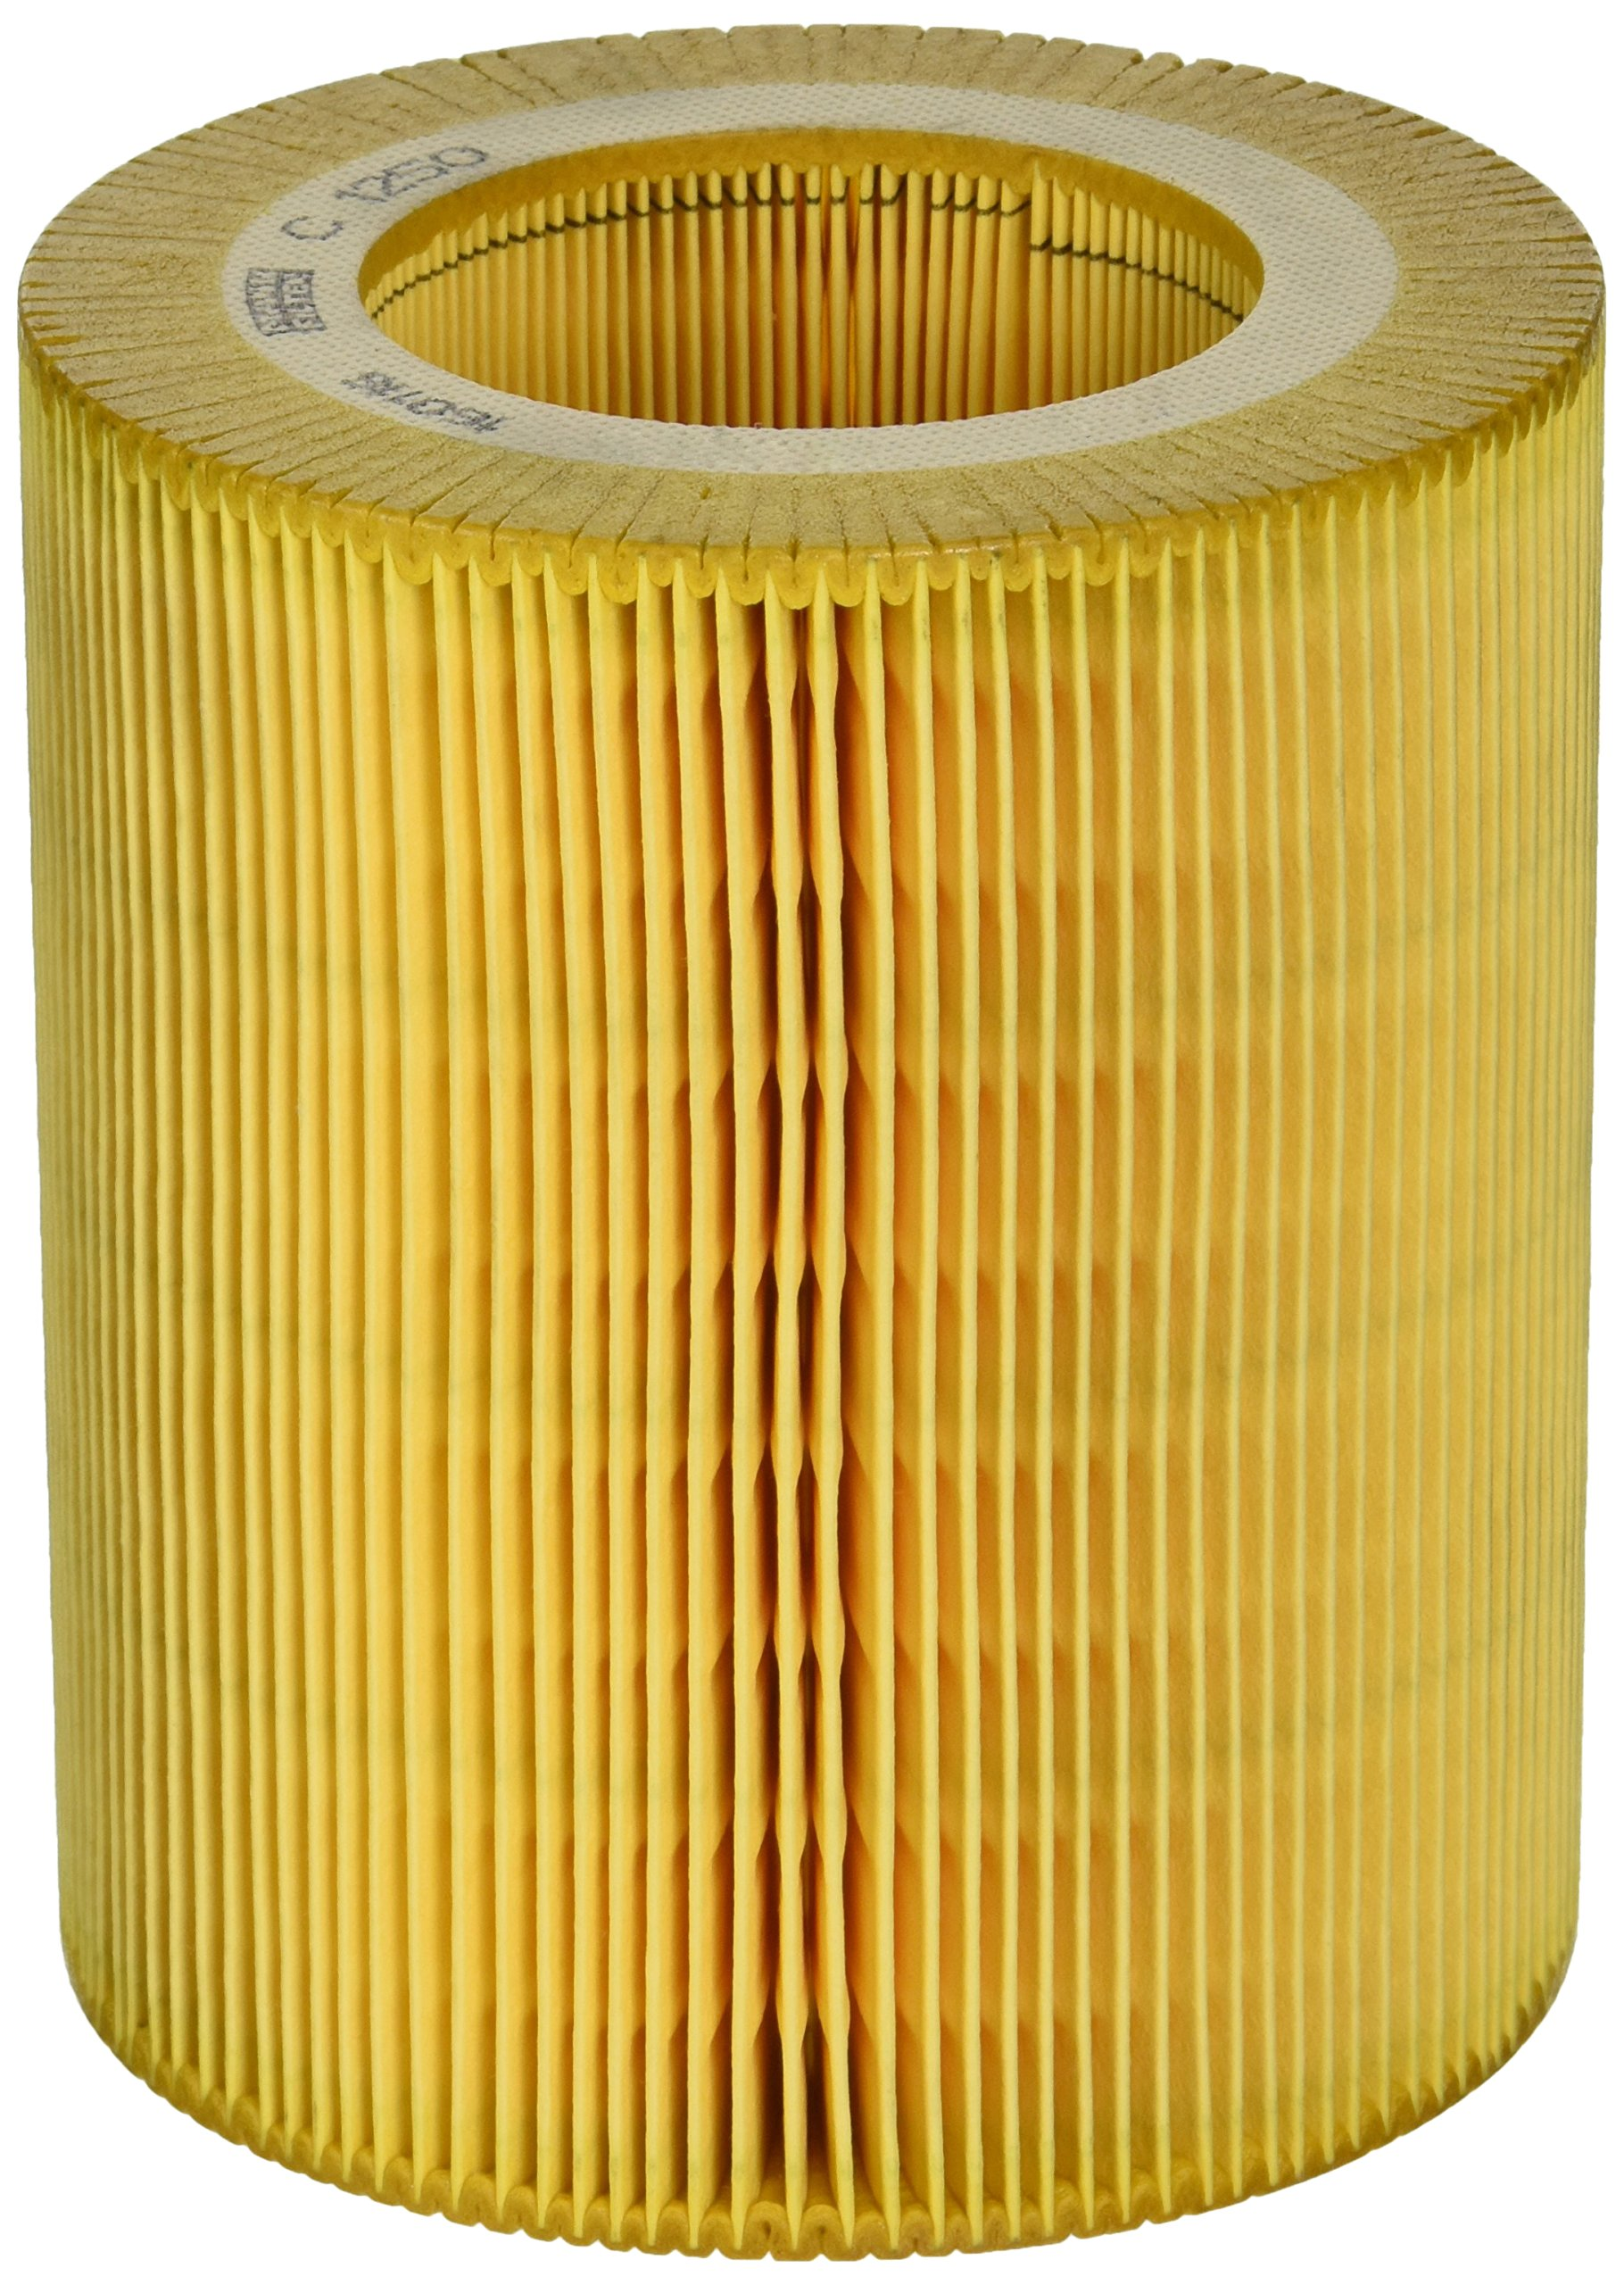 Panel HAF Qty 1 AFE 22806889 Ingersoll//RAND Direct Replacement Filter